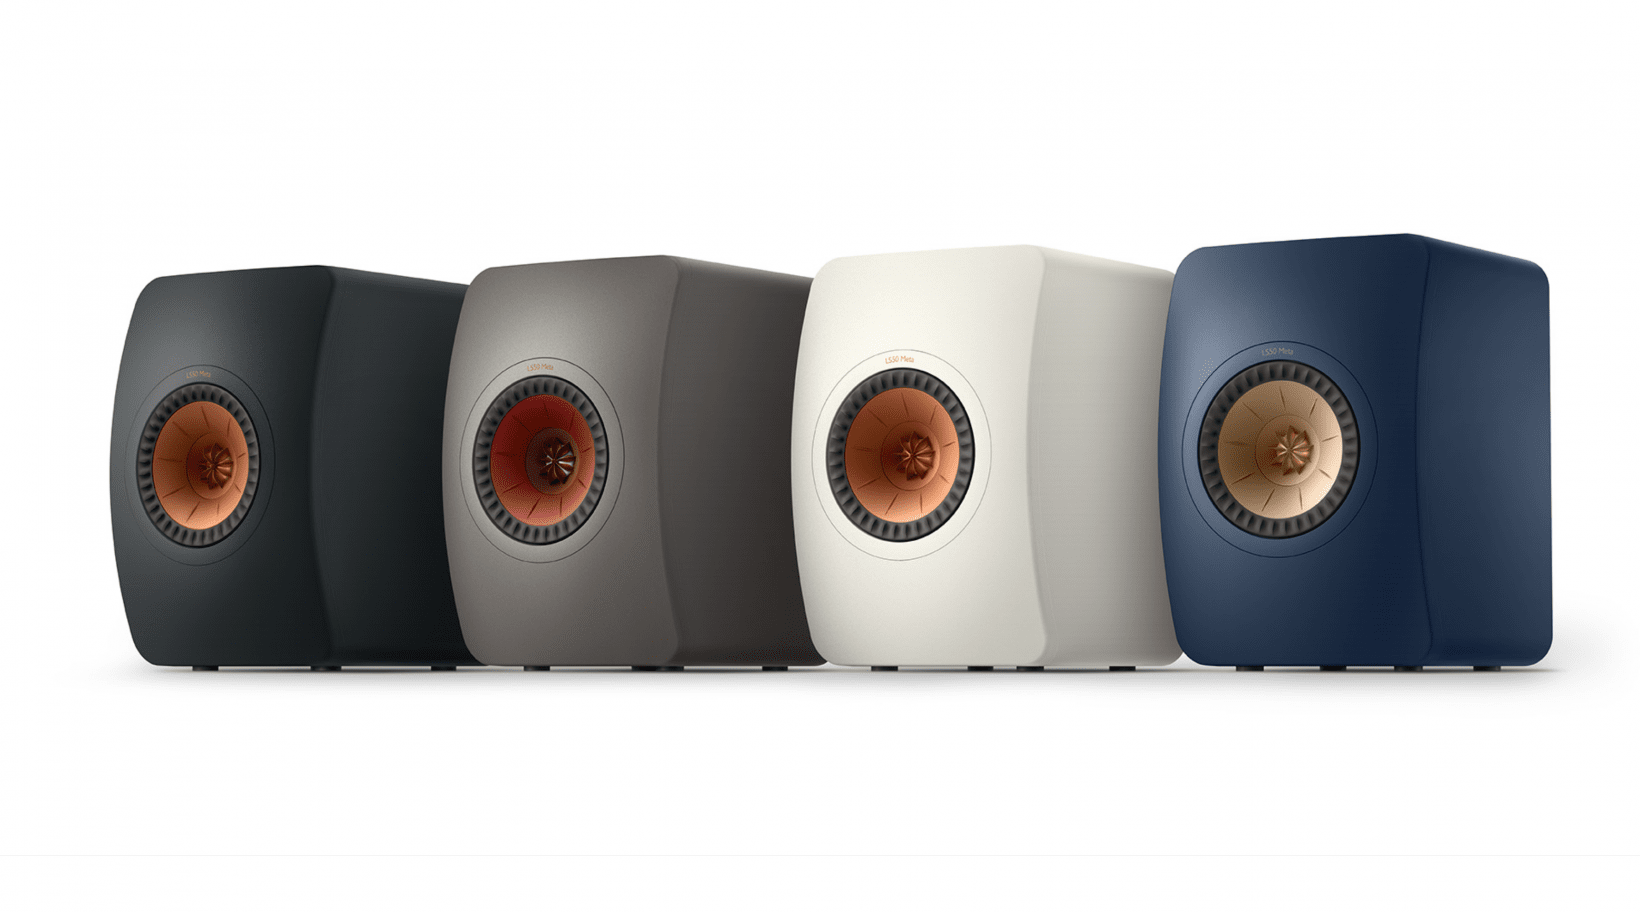 KEF updates its legendary LS50 speakers with distortion-killing 'metamaterials'